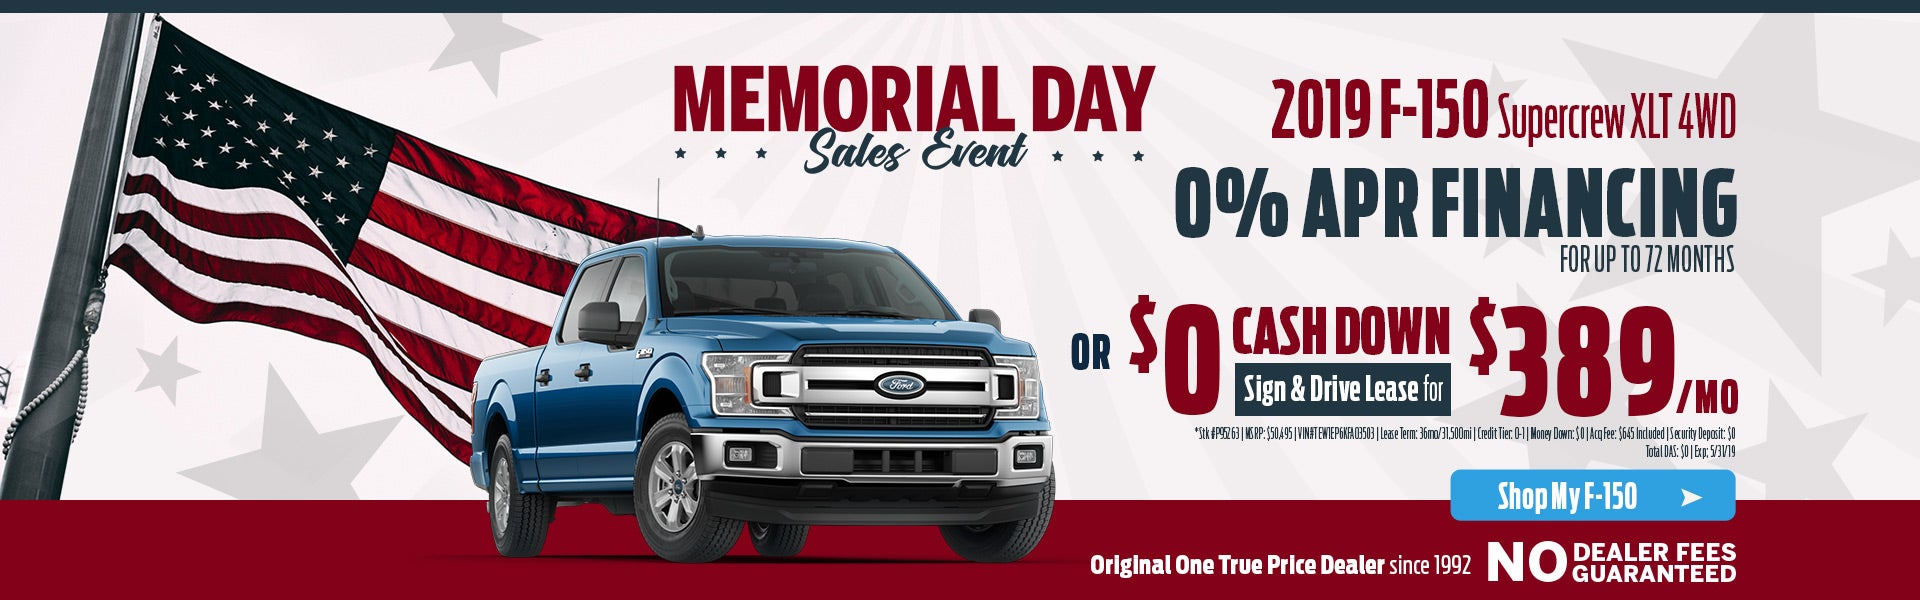 0 Apr Financing For Up To 72 Months On 2019 Ford F 150 Supercrew